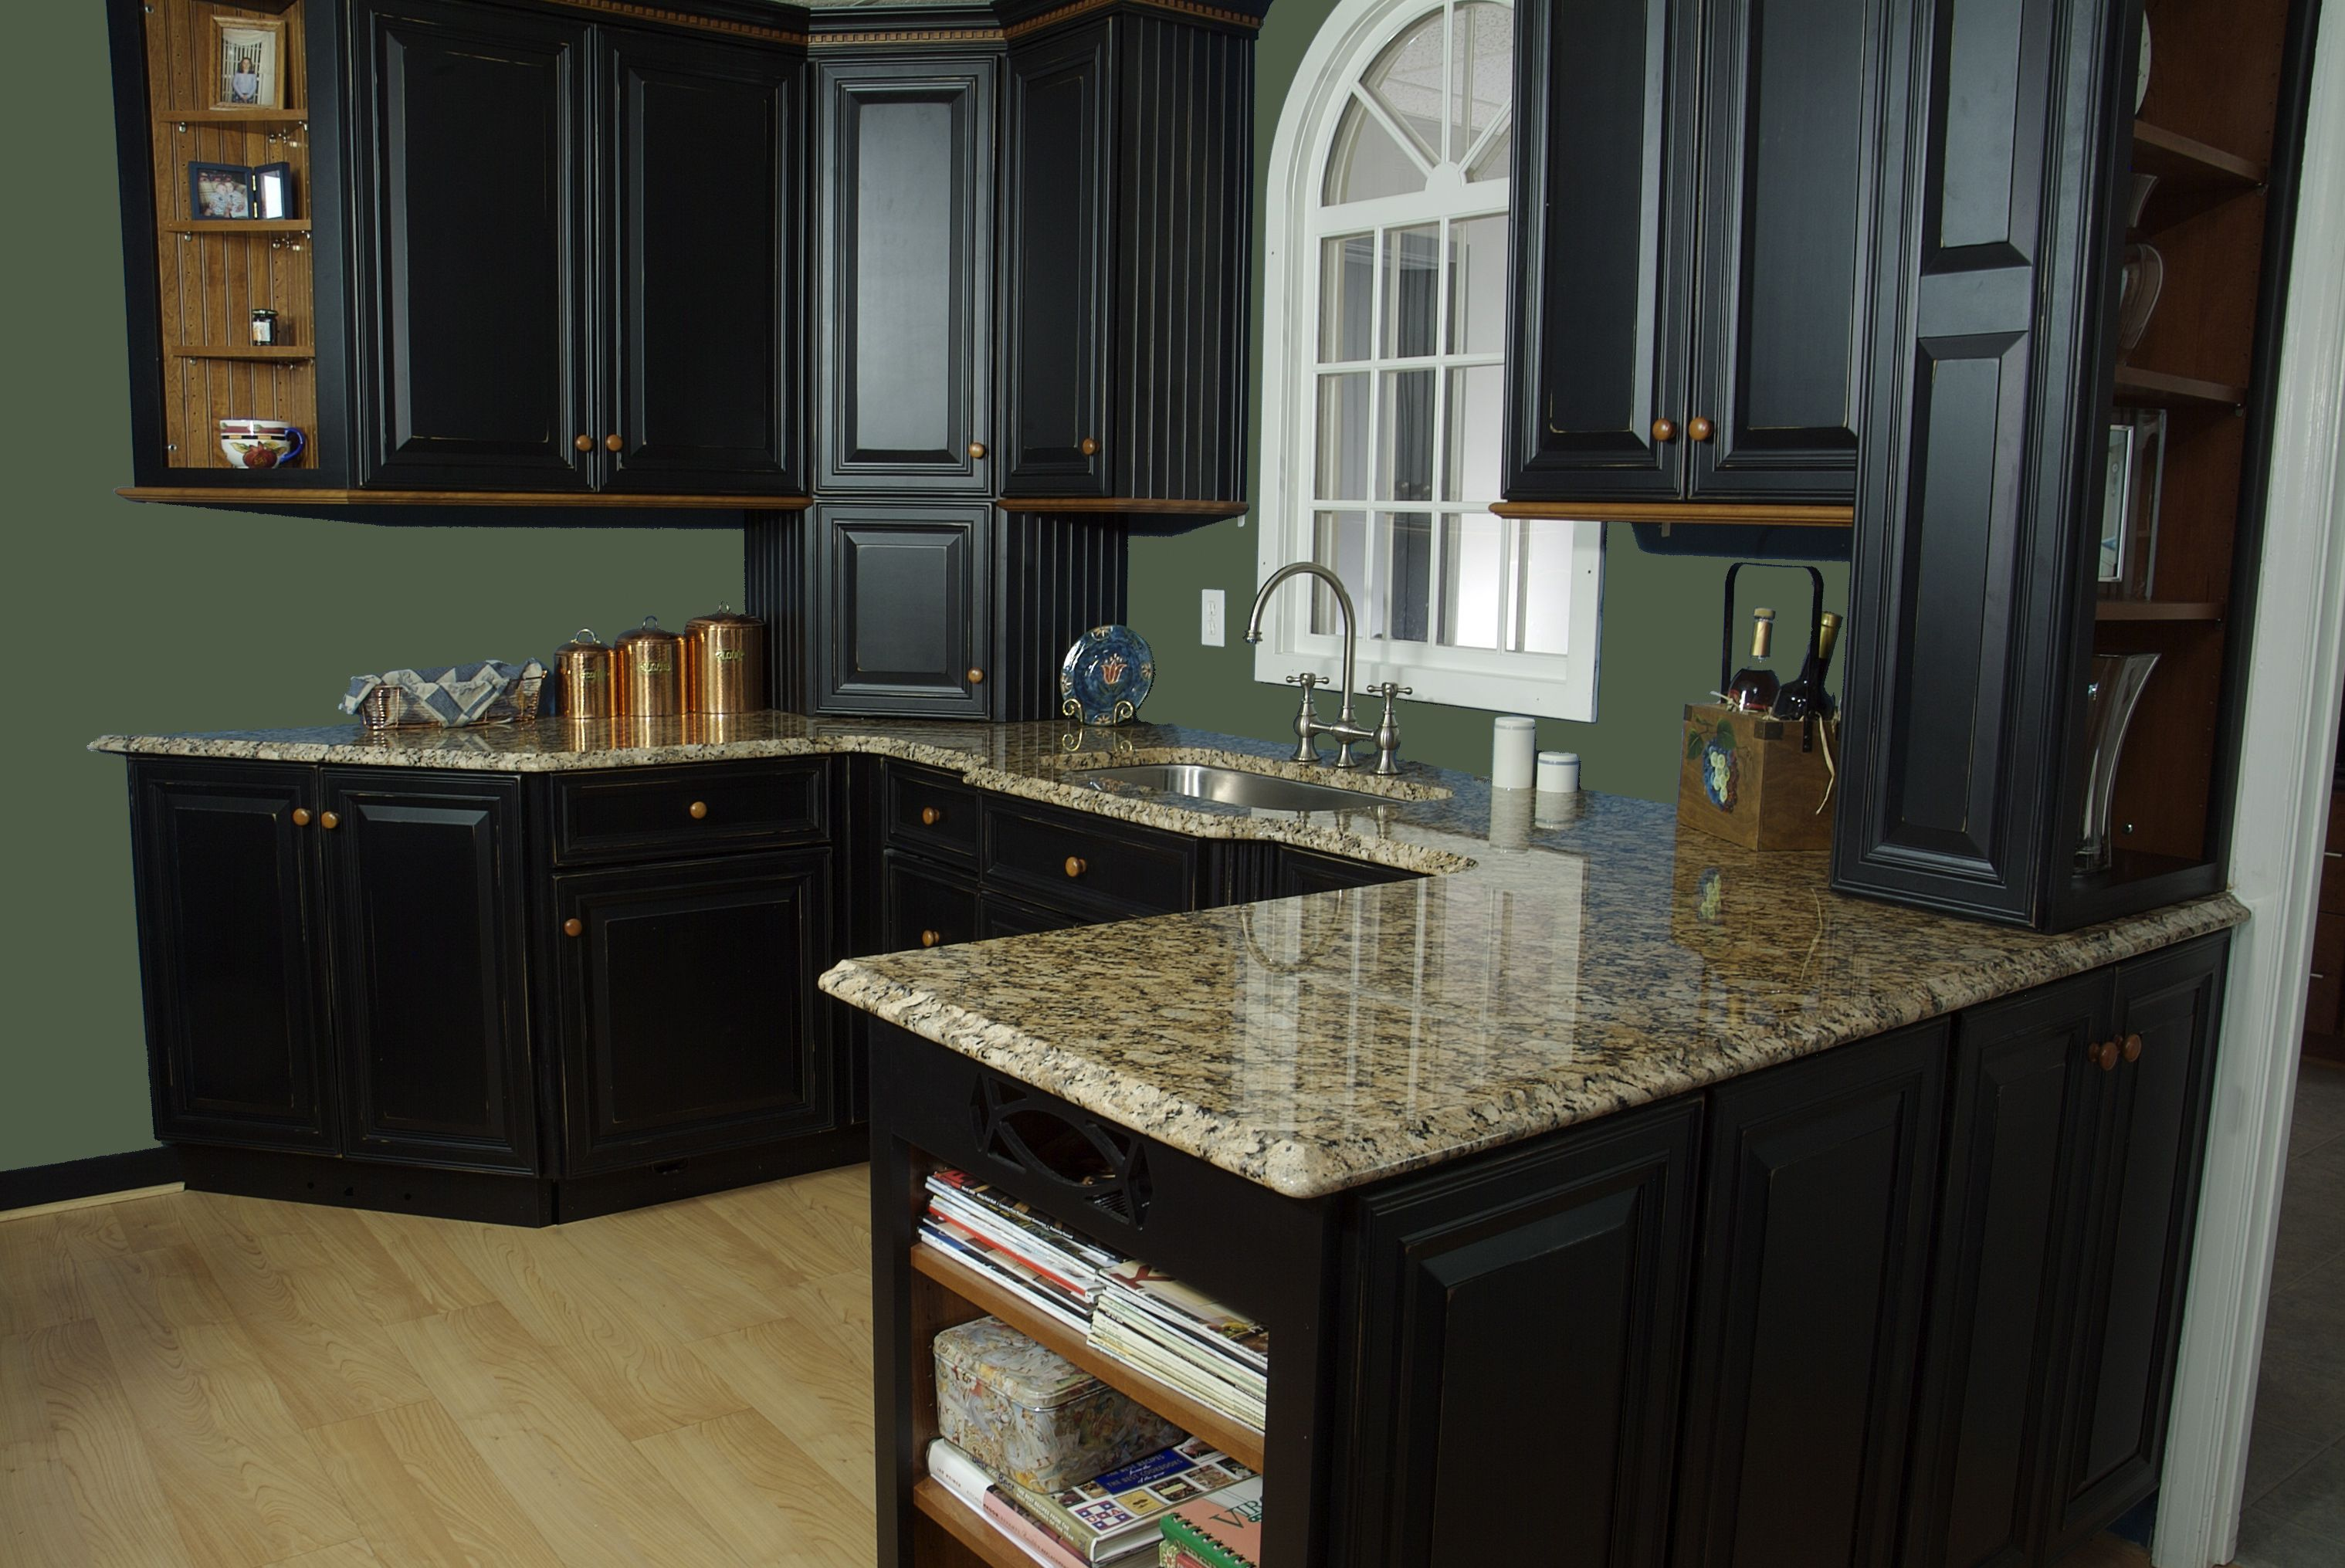 Kitchen Cabinets Made In Neoga Il Wood Species Maple And Cherry Door Style Lincoln Finish Outer Cabinets Maple Silhoue Kitchen Kitchen Cabinets Cabinet